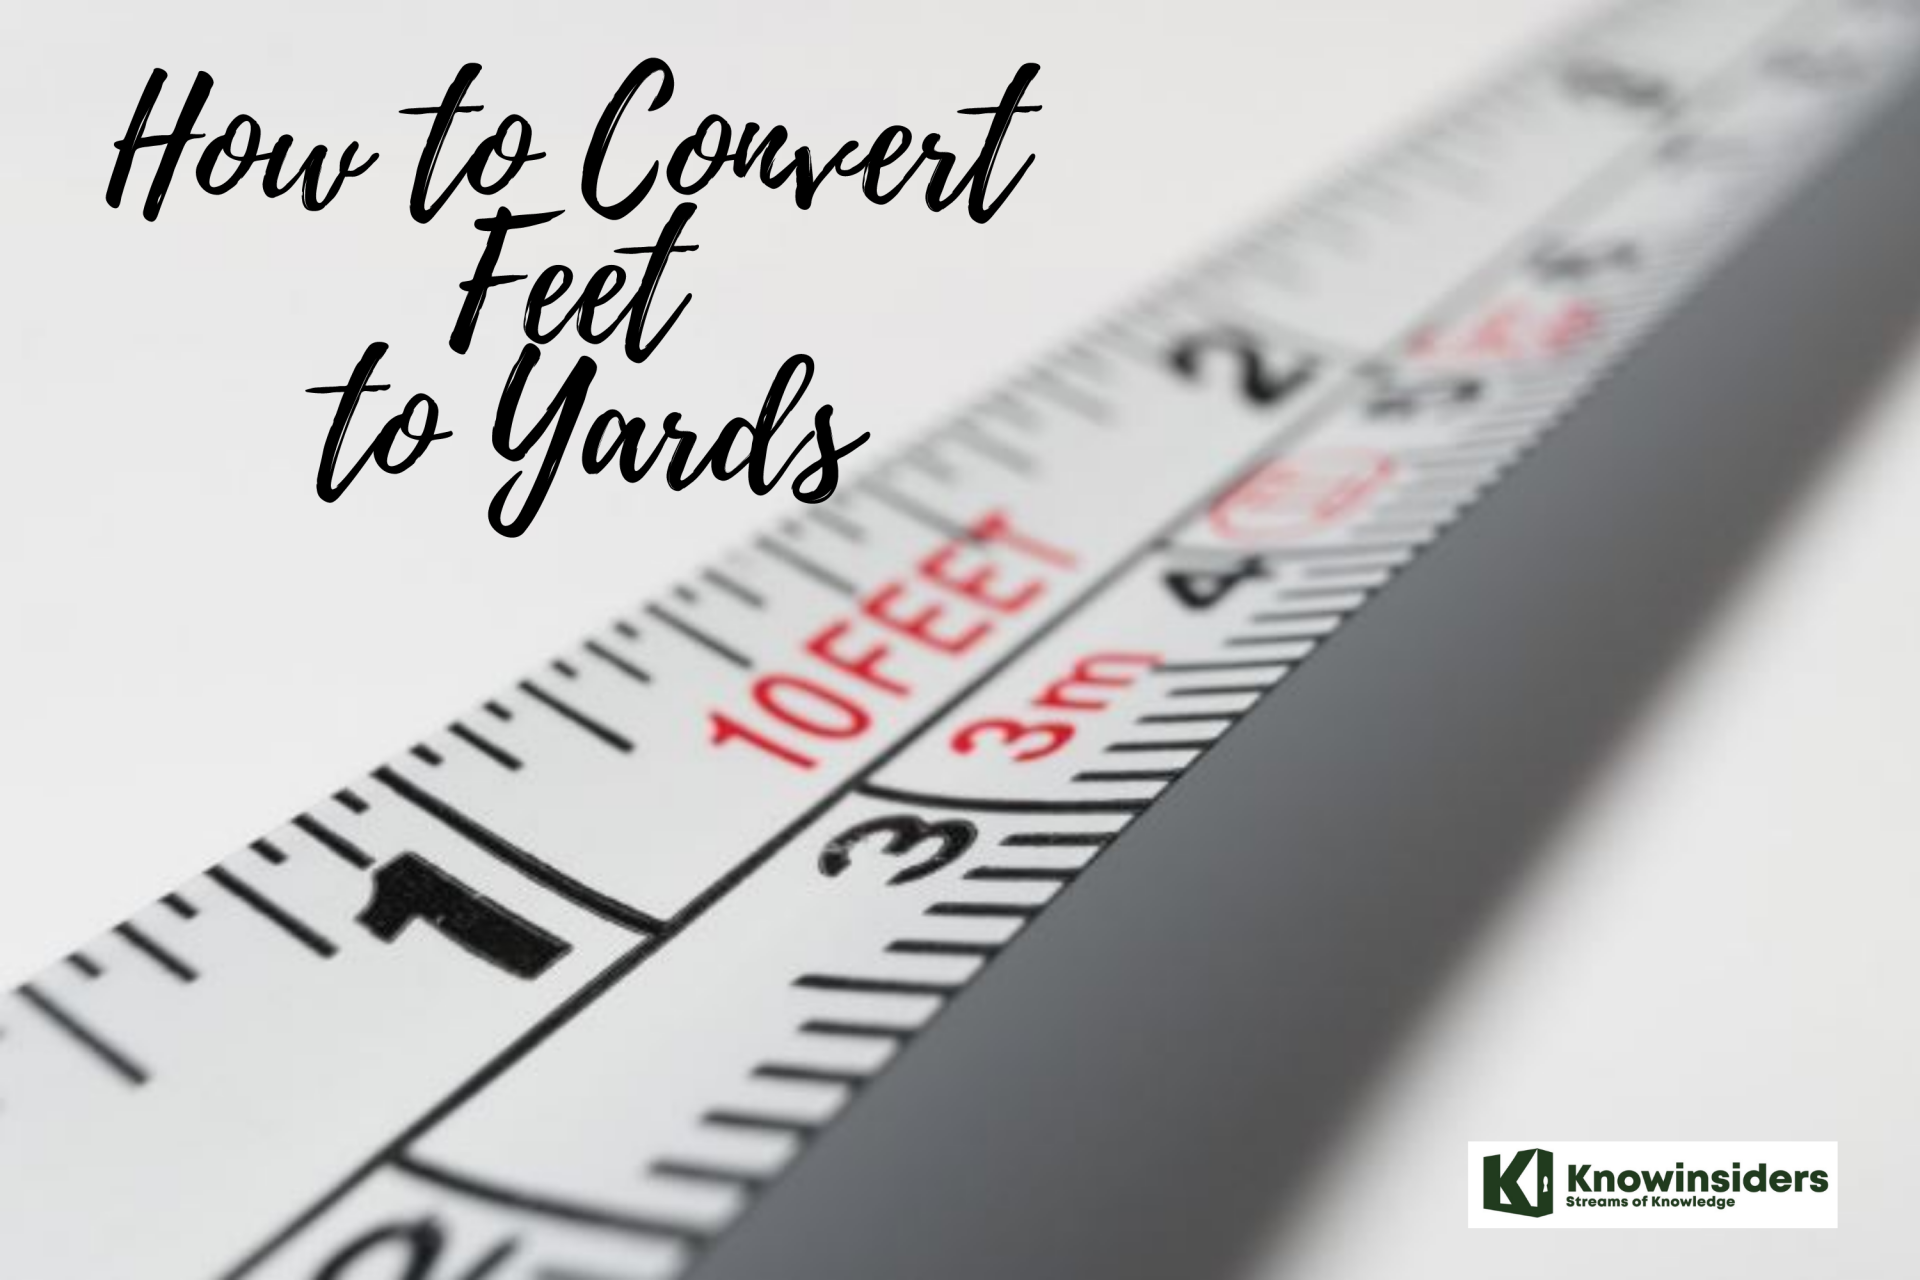 How to Convert Feet to Yards: Simplest Mothods and Easiest Steps